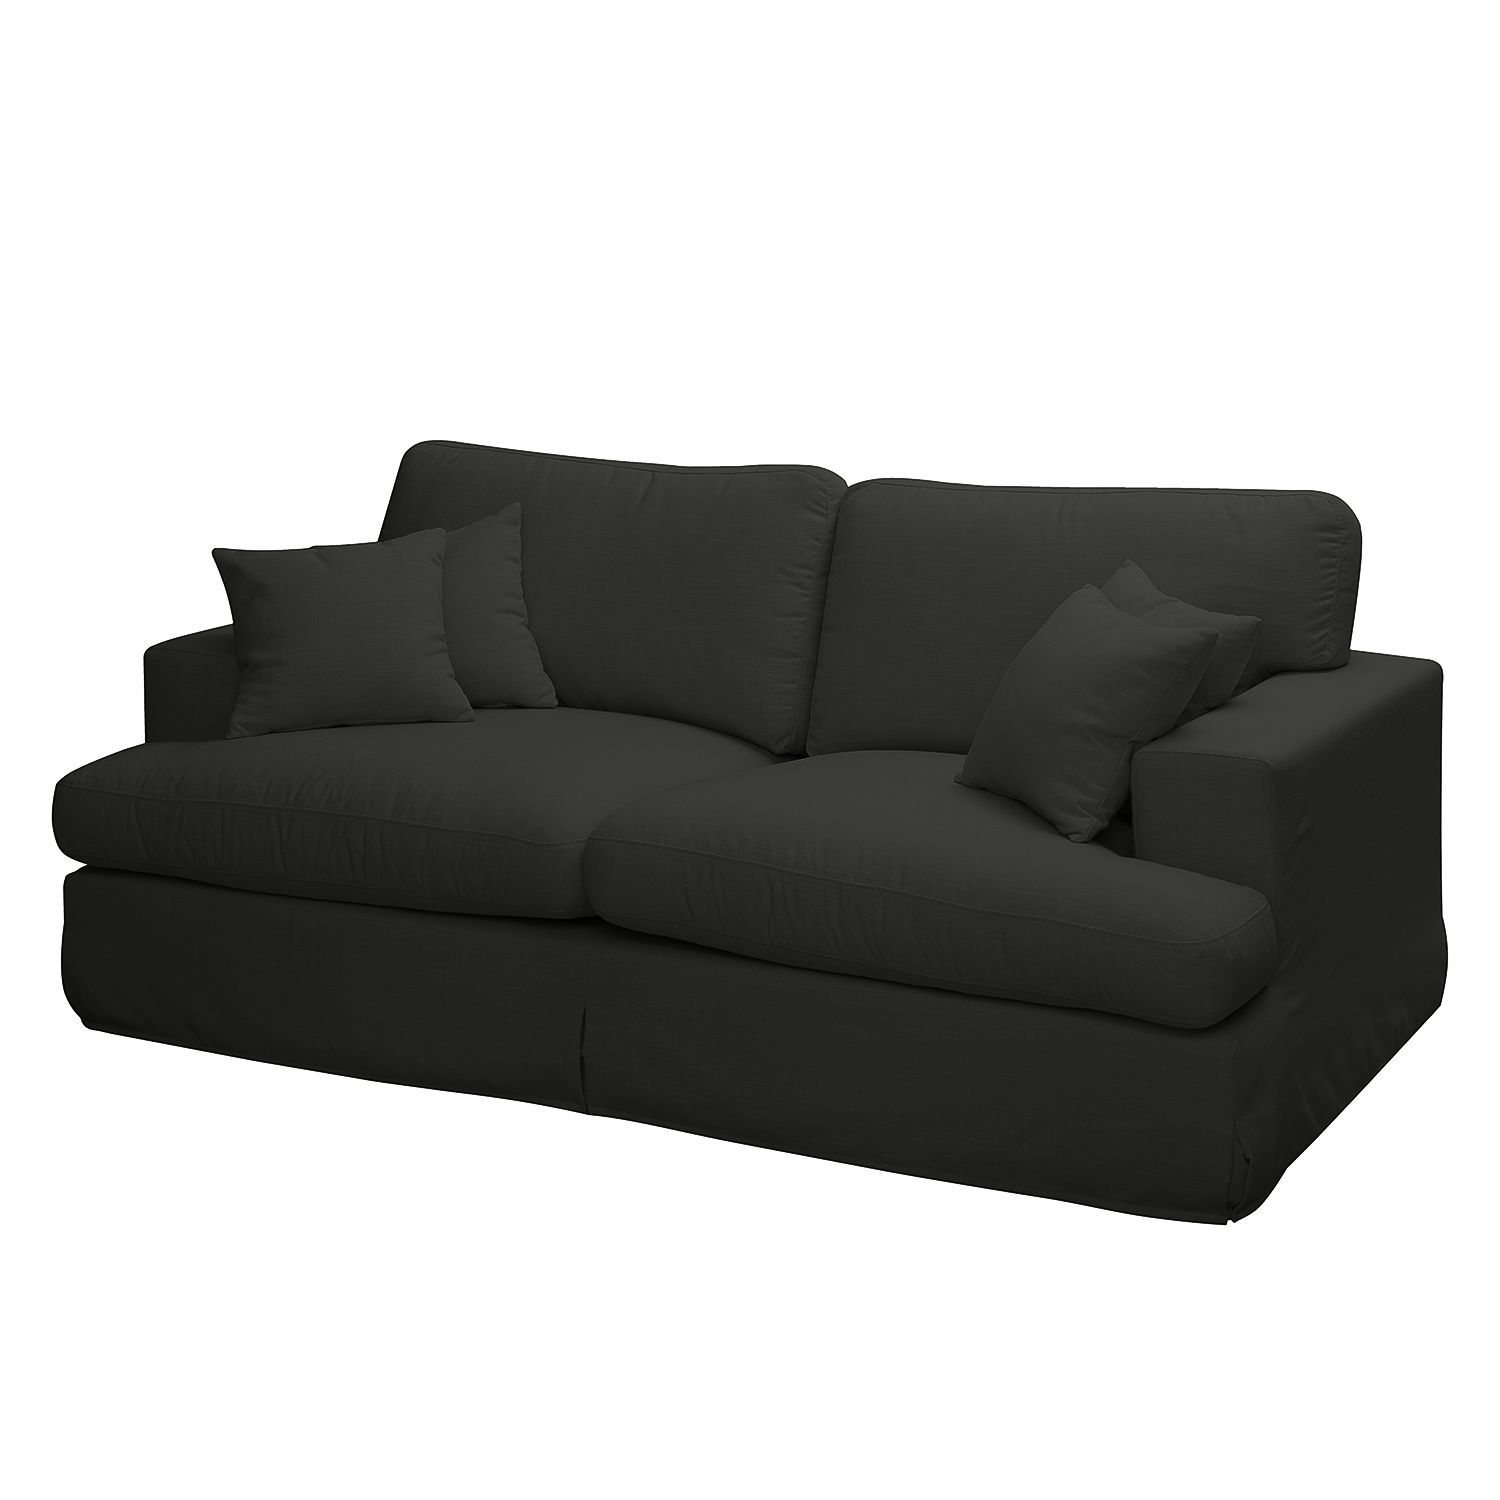 Bettsofa Rumba Canape Lit 2 Places